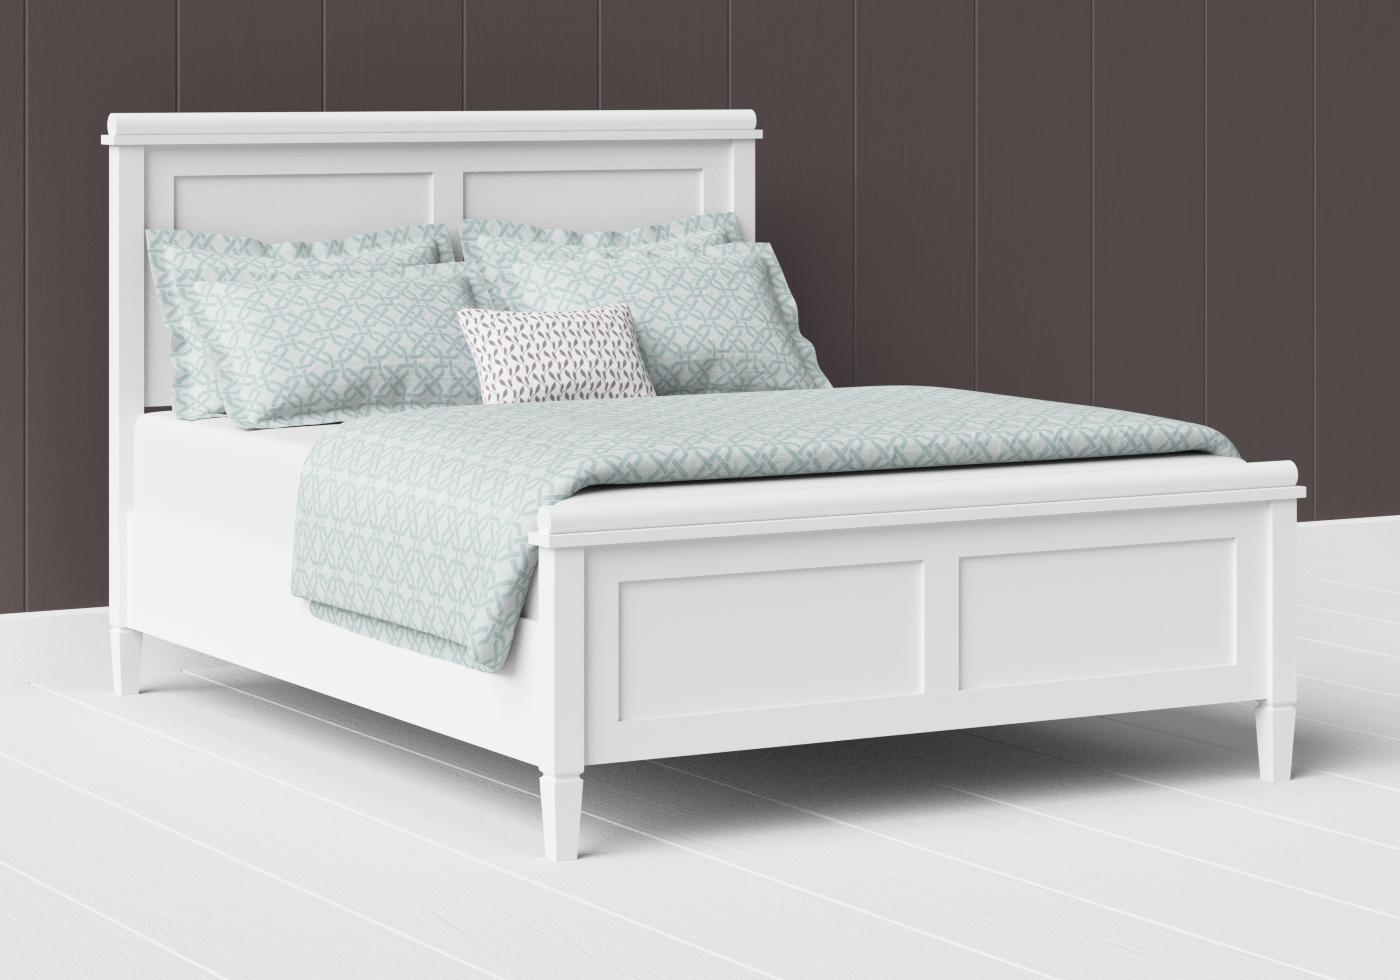 Nocturne low footend painted wood bed in satin white